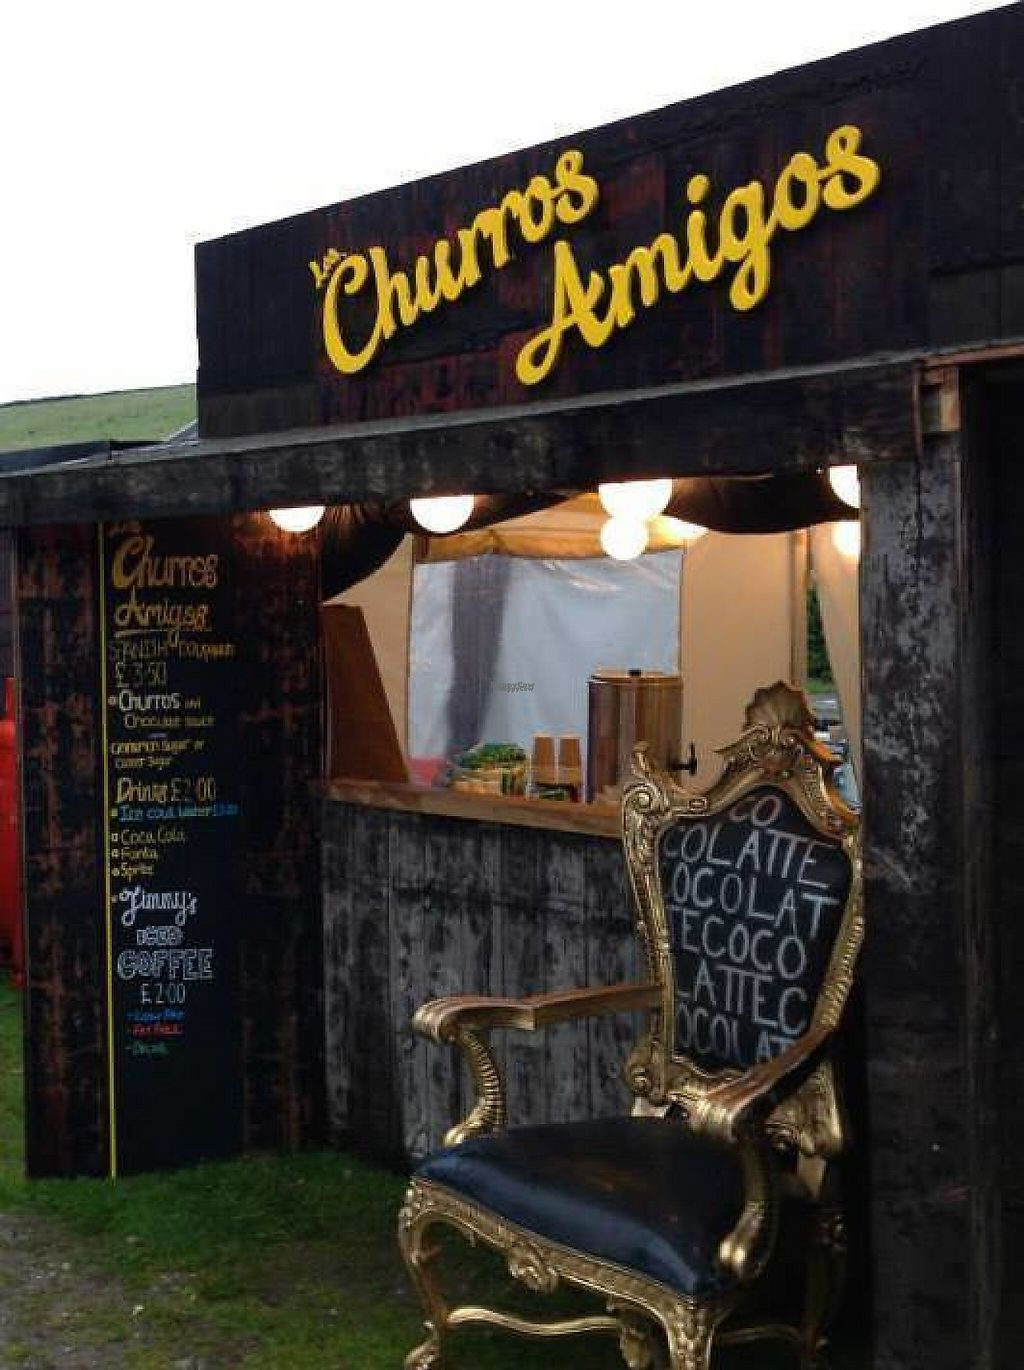 """Photo of Los Churros Amigos  by <a href=""""/members/profile/community4"""">community4</a> <br/>Los Churros Amigos  <br/> March 20, 2017  - <a href='/contact/abuse/image/83918/238622'>Report</a>"""